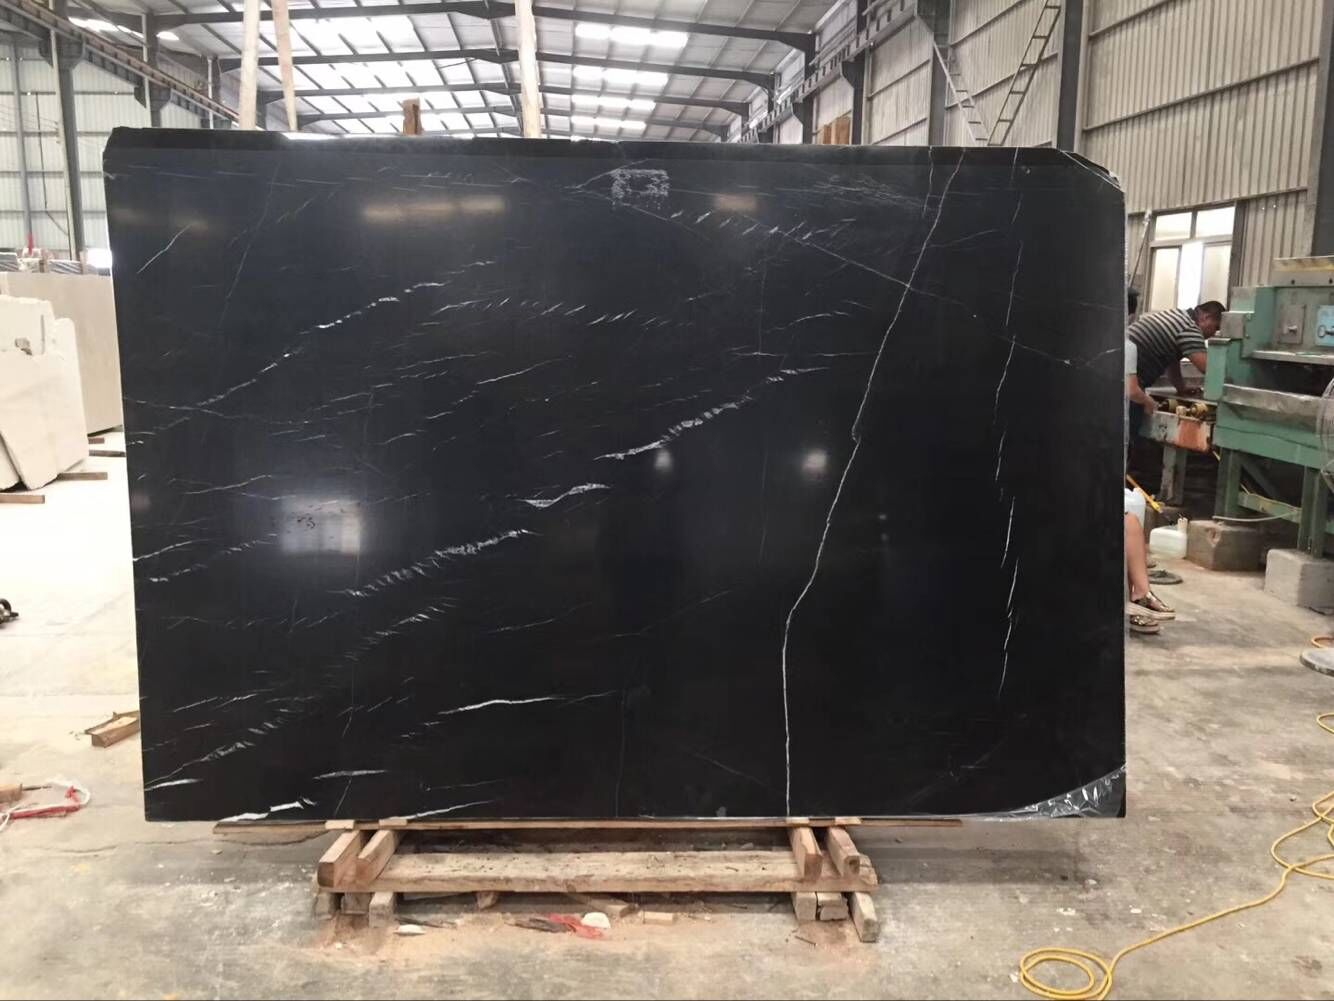 Nero Black  Nero Marquinia Marble Tiles & Slabs China Polished Tiles Black Marble Walling & Flooring